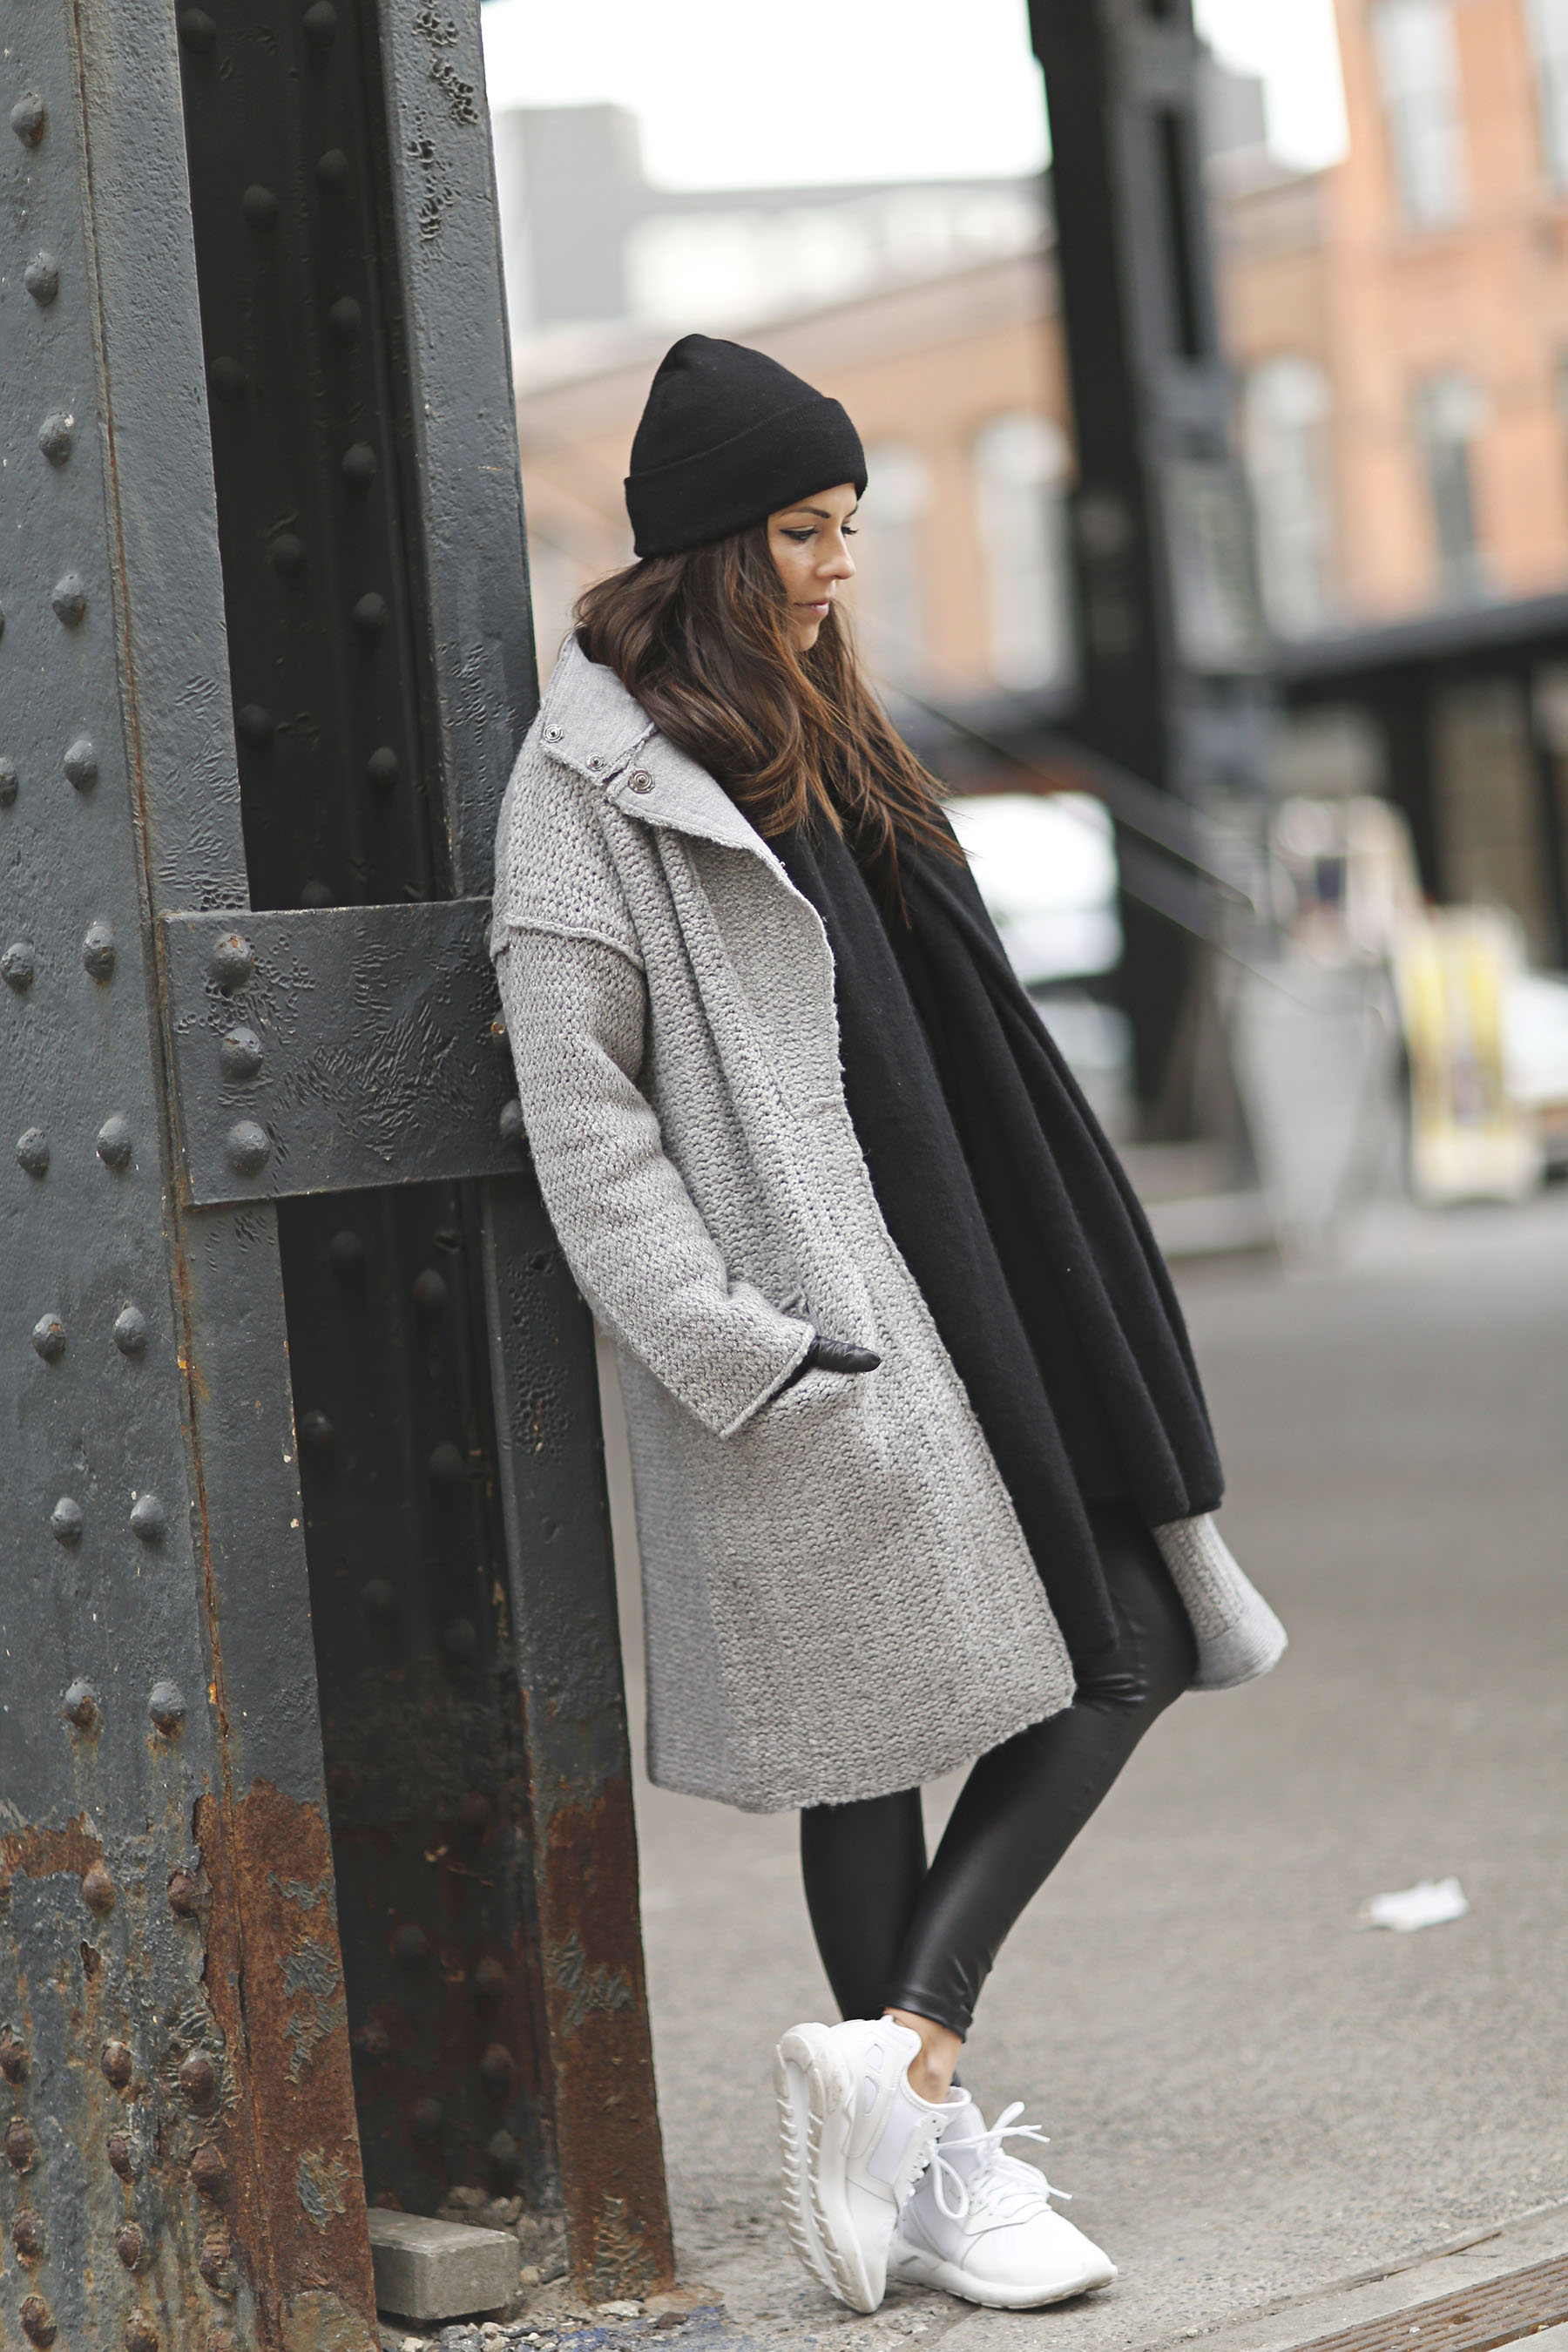 42 Cute n' Cozy Winter Outfit Ideas. By. An easy fix for a simple outfit in black and white is a hot red shoe. Try it in an open-toe stiletto for a true hot-tamale touch. Winter Outfit.